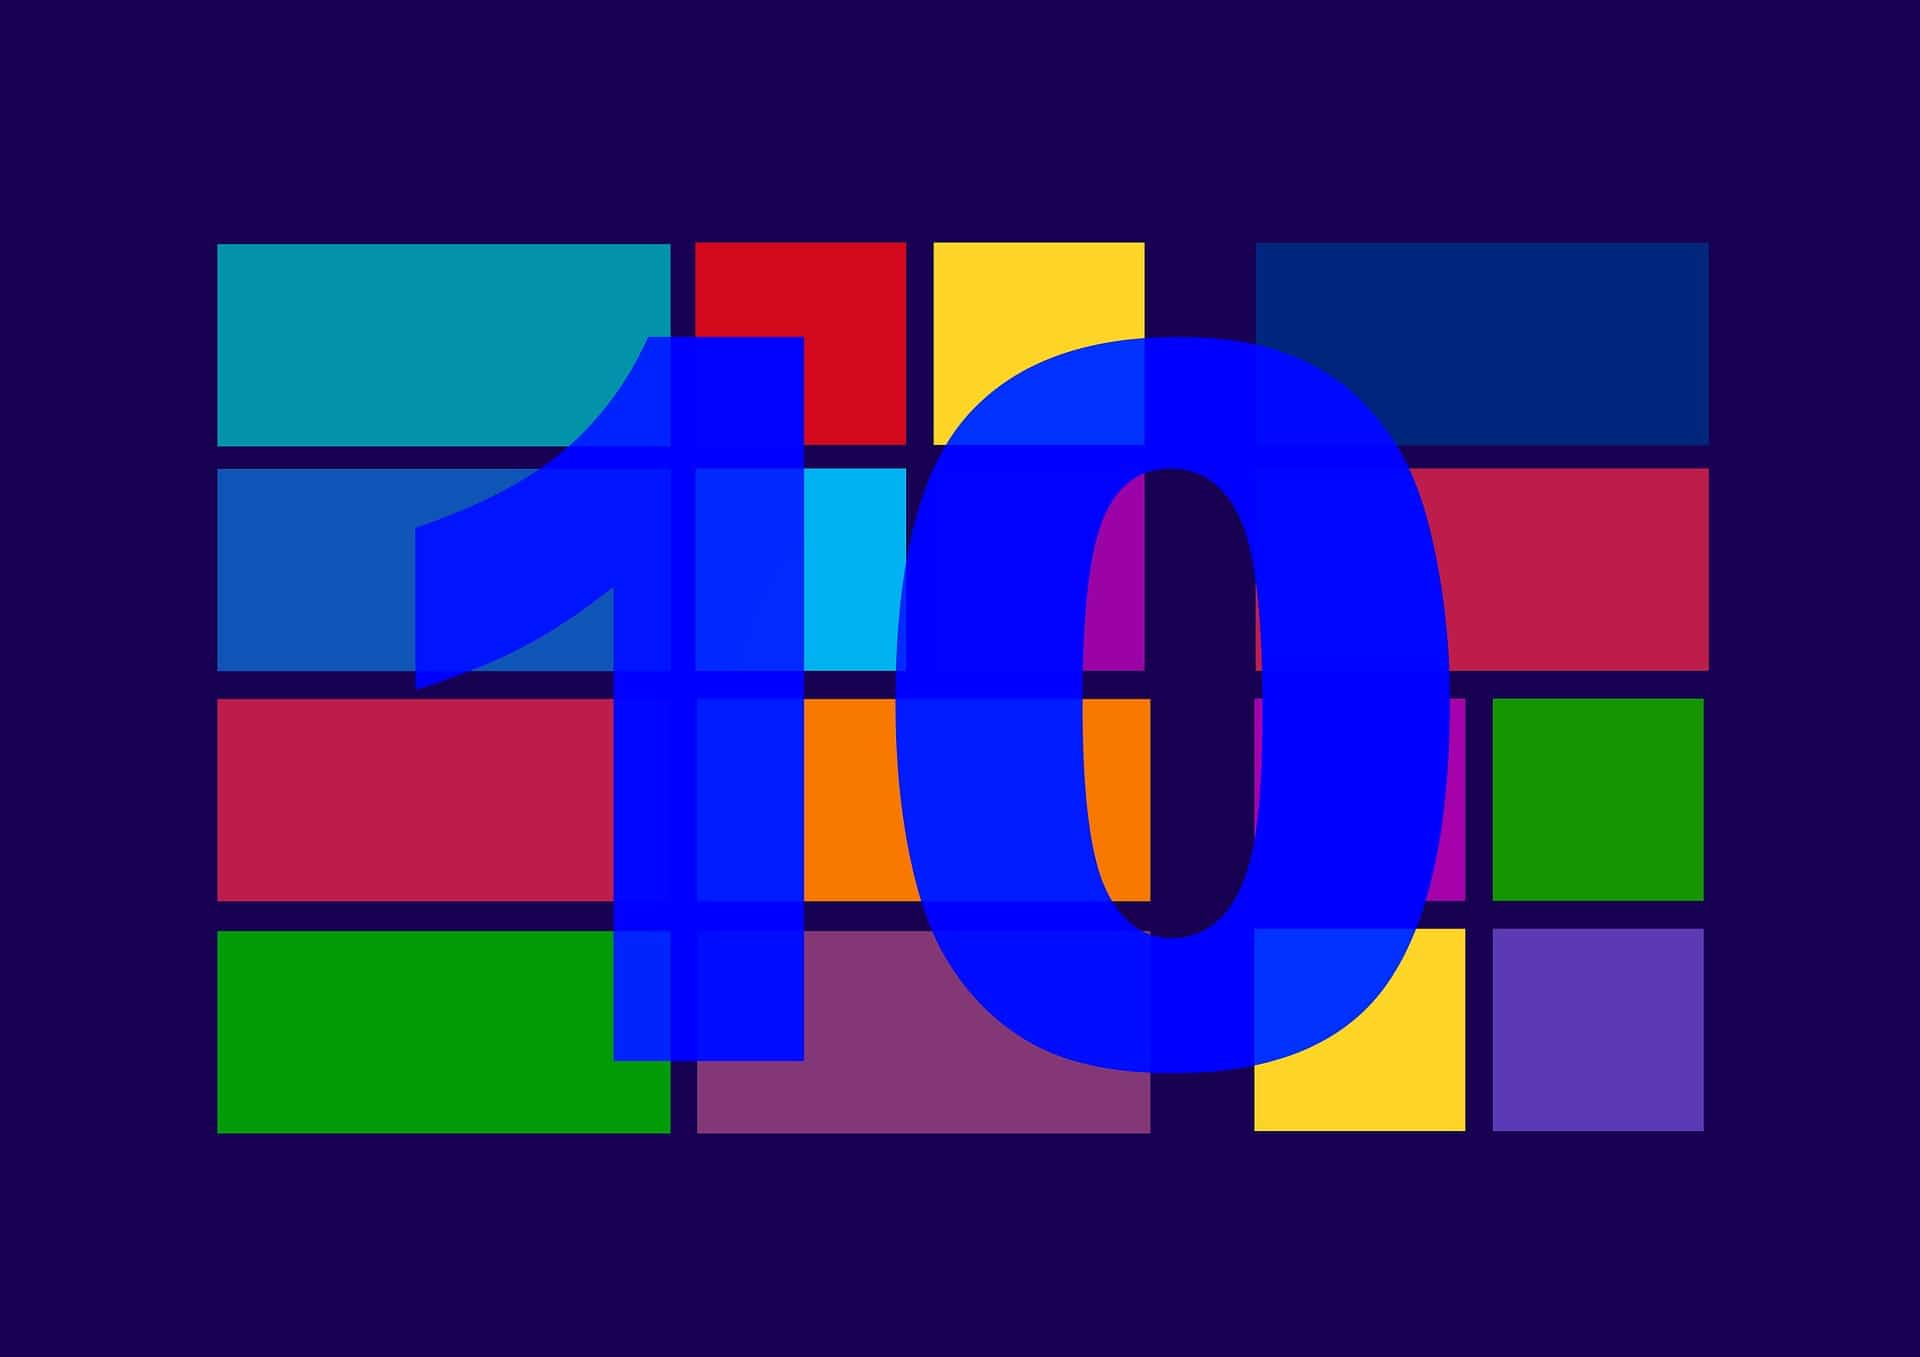 Windows 10 langsam